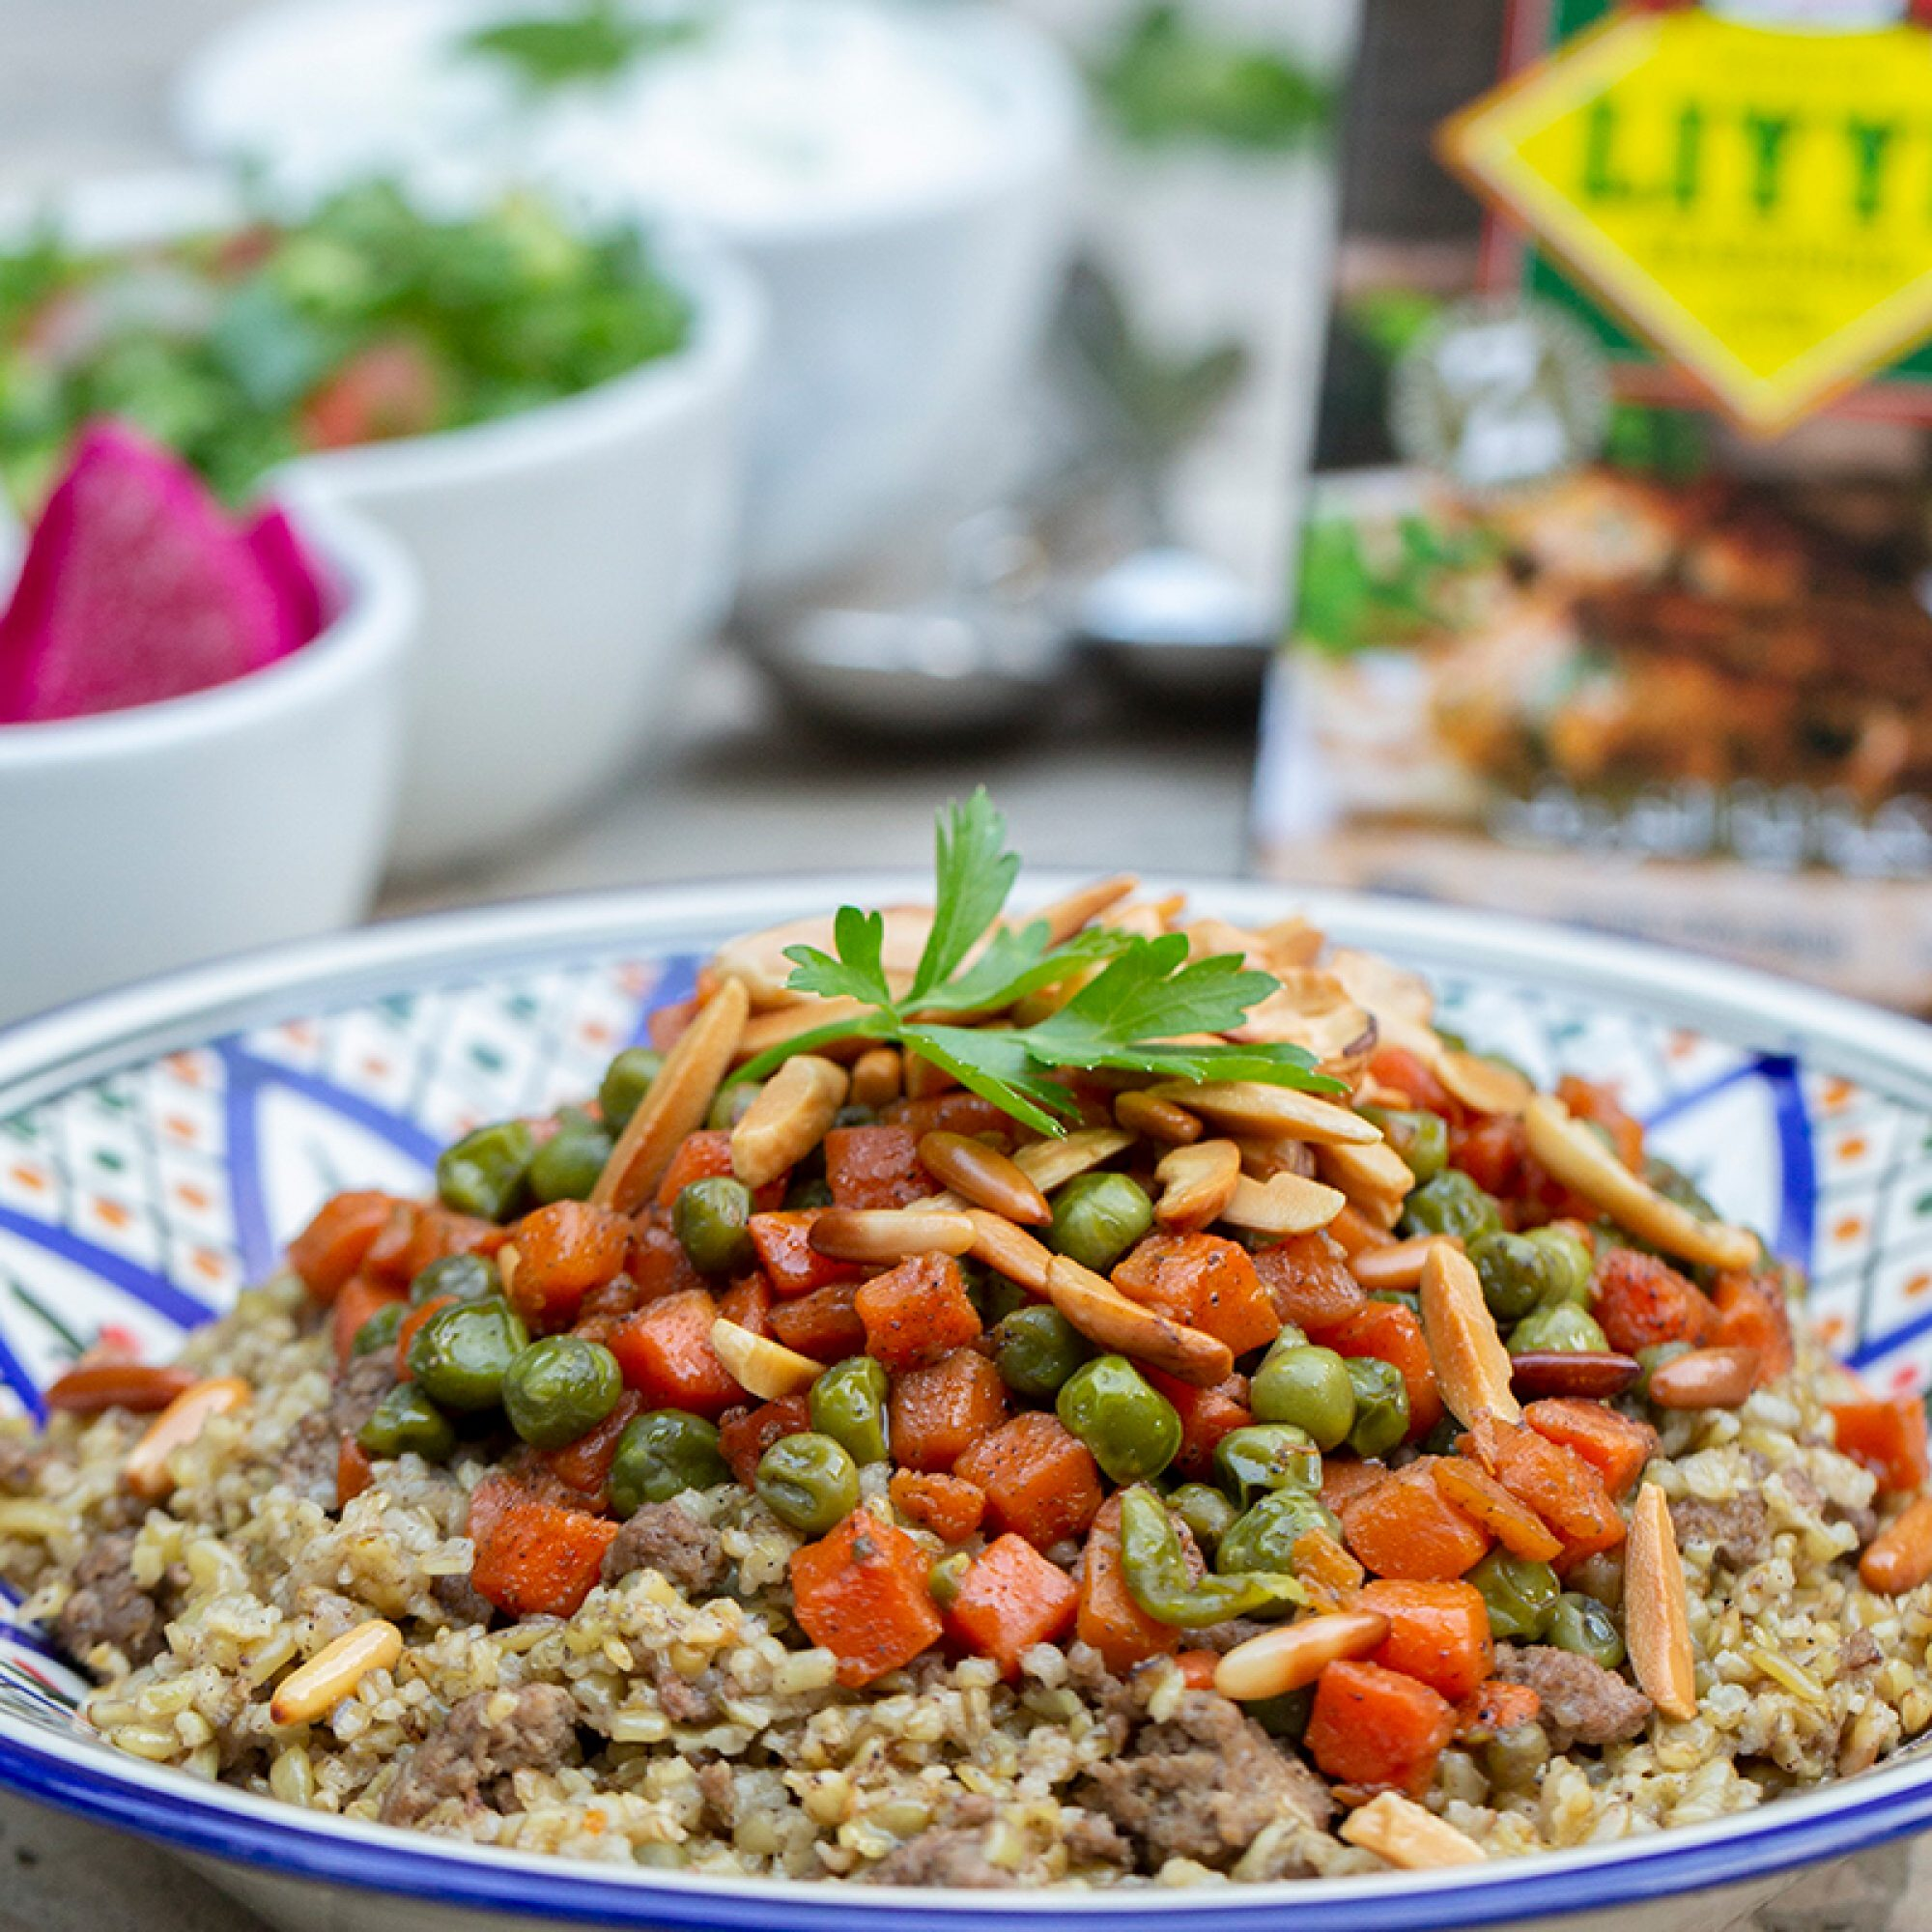 freekeh-and-ground-lamb-ouzi-with-liyye-seasoning_